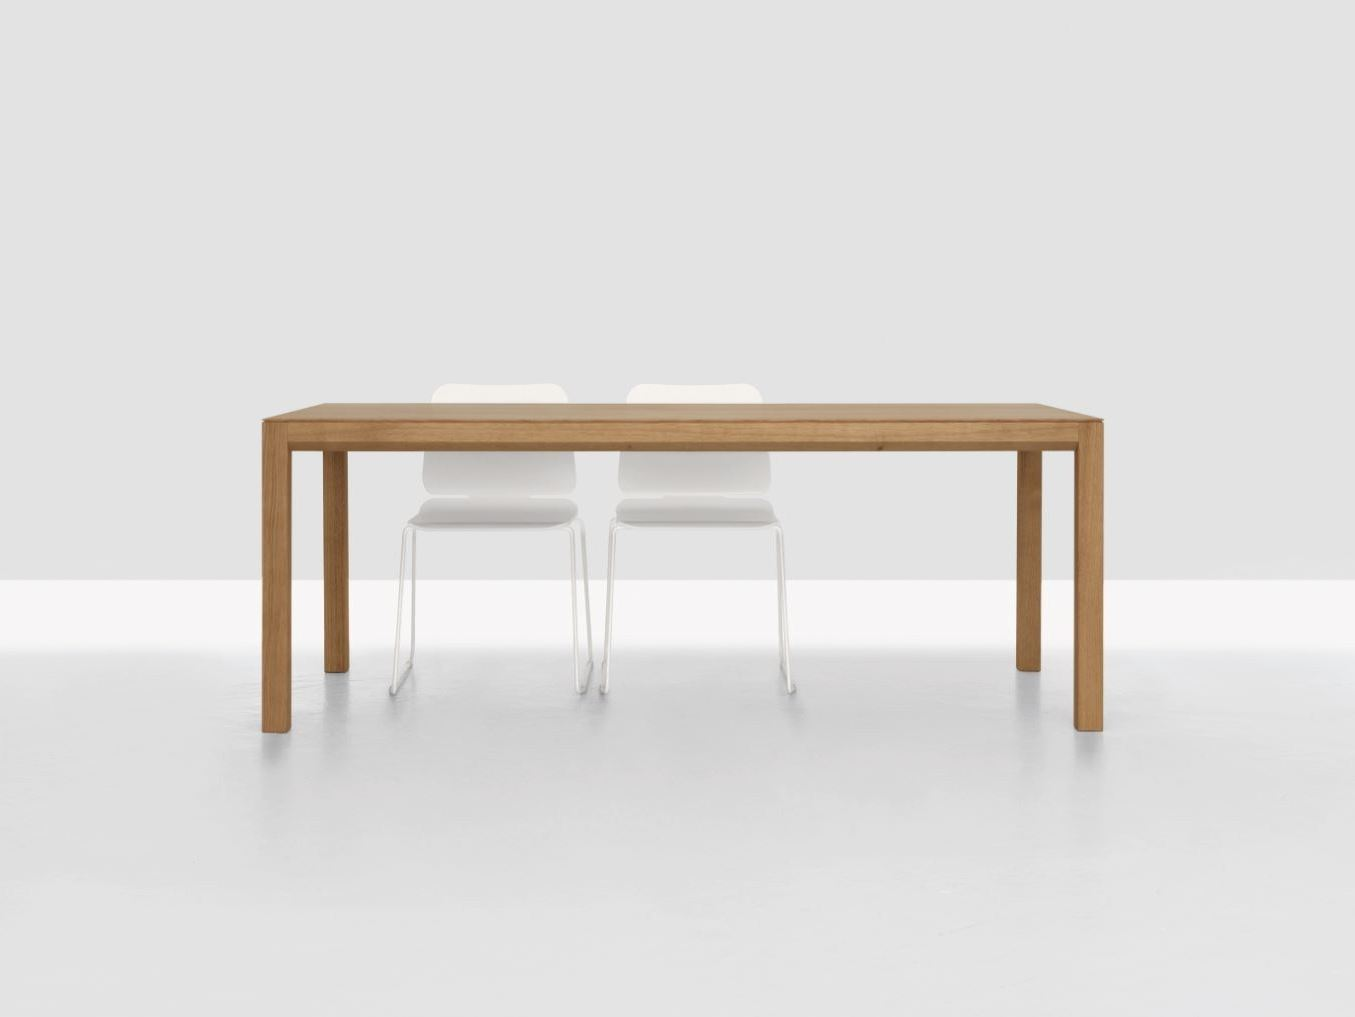 Table extensible rectangulaire en bois domino zoom by zeitraum for Table rectangulaire extensible bois